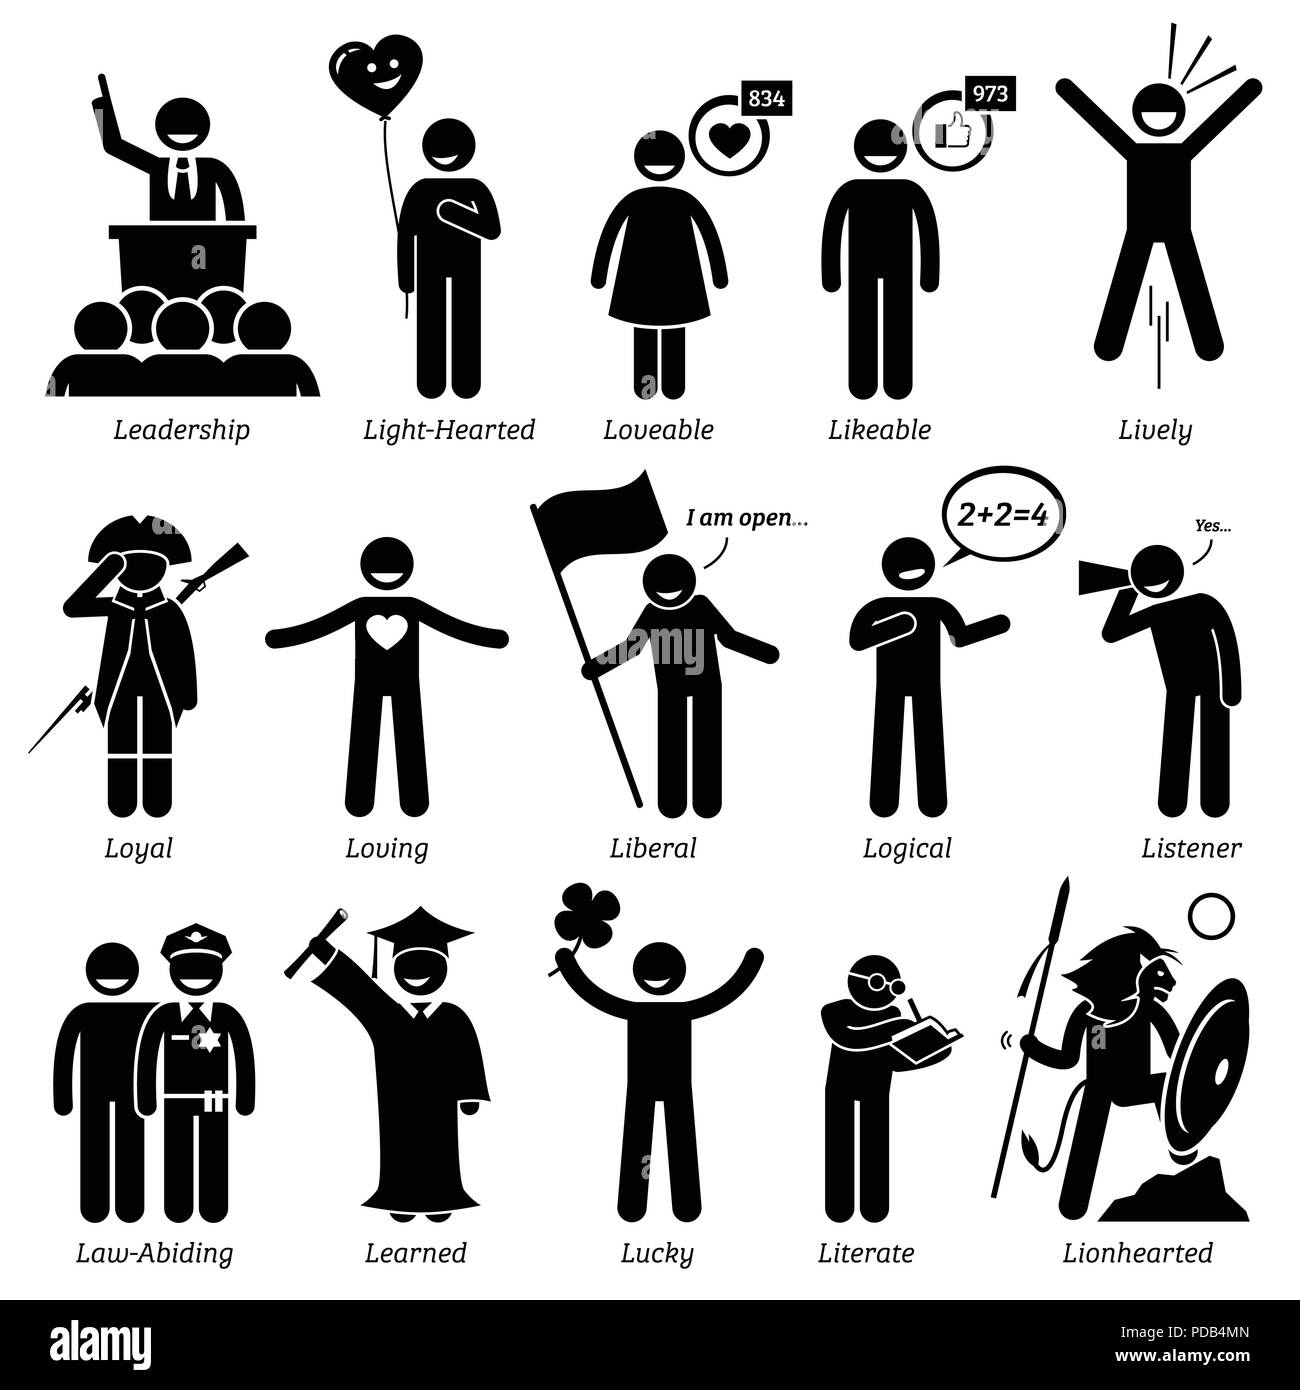 Positive Personalities Character Traits. Stick Figures Man Icons. Starting with the Alphabet L. - Stock Image